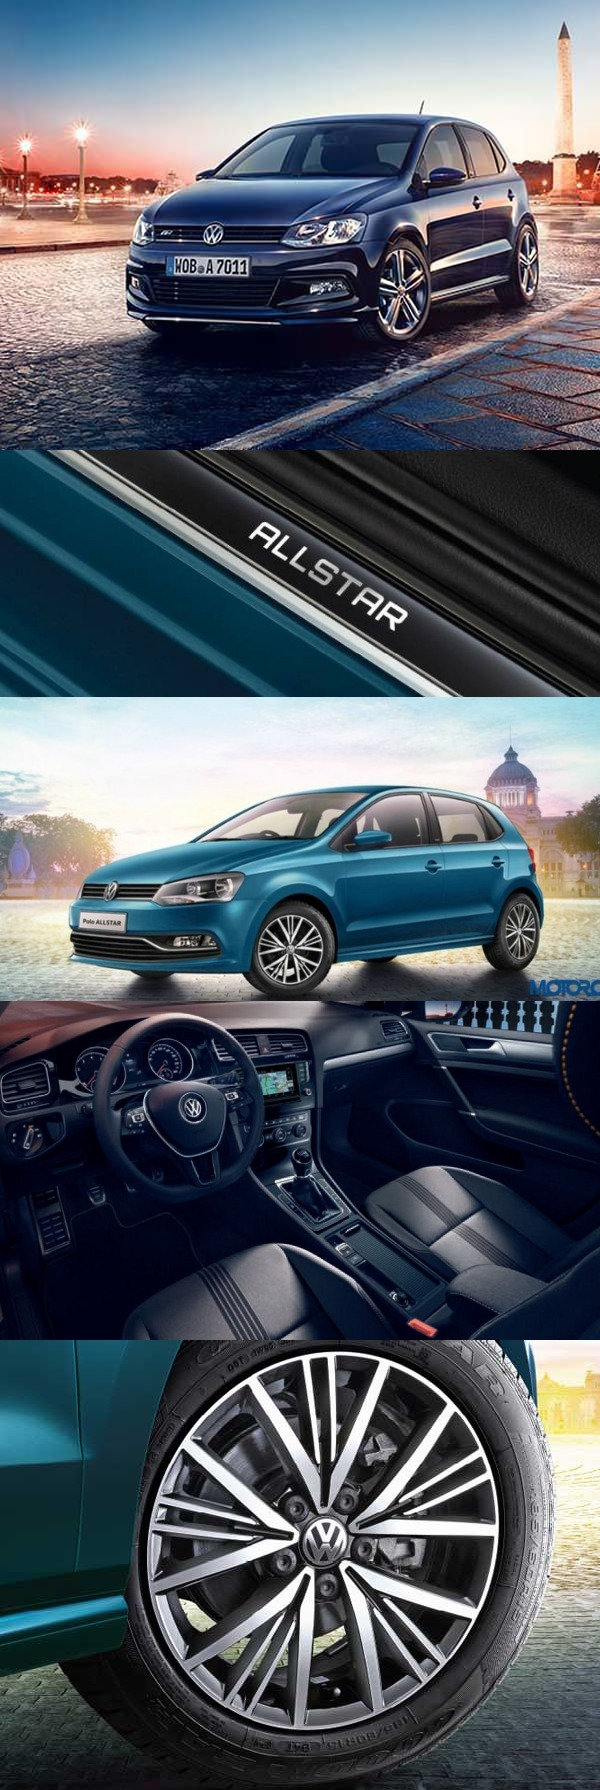 Volkswagen Polo ALLStar Launched in India at INR 7.51 Lakh